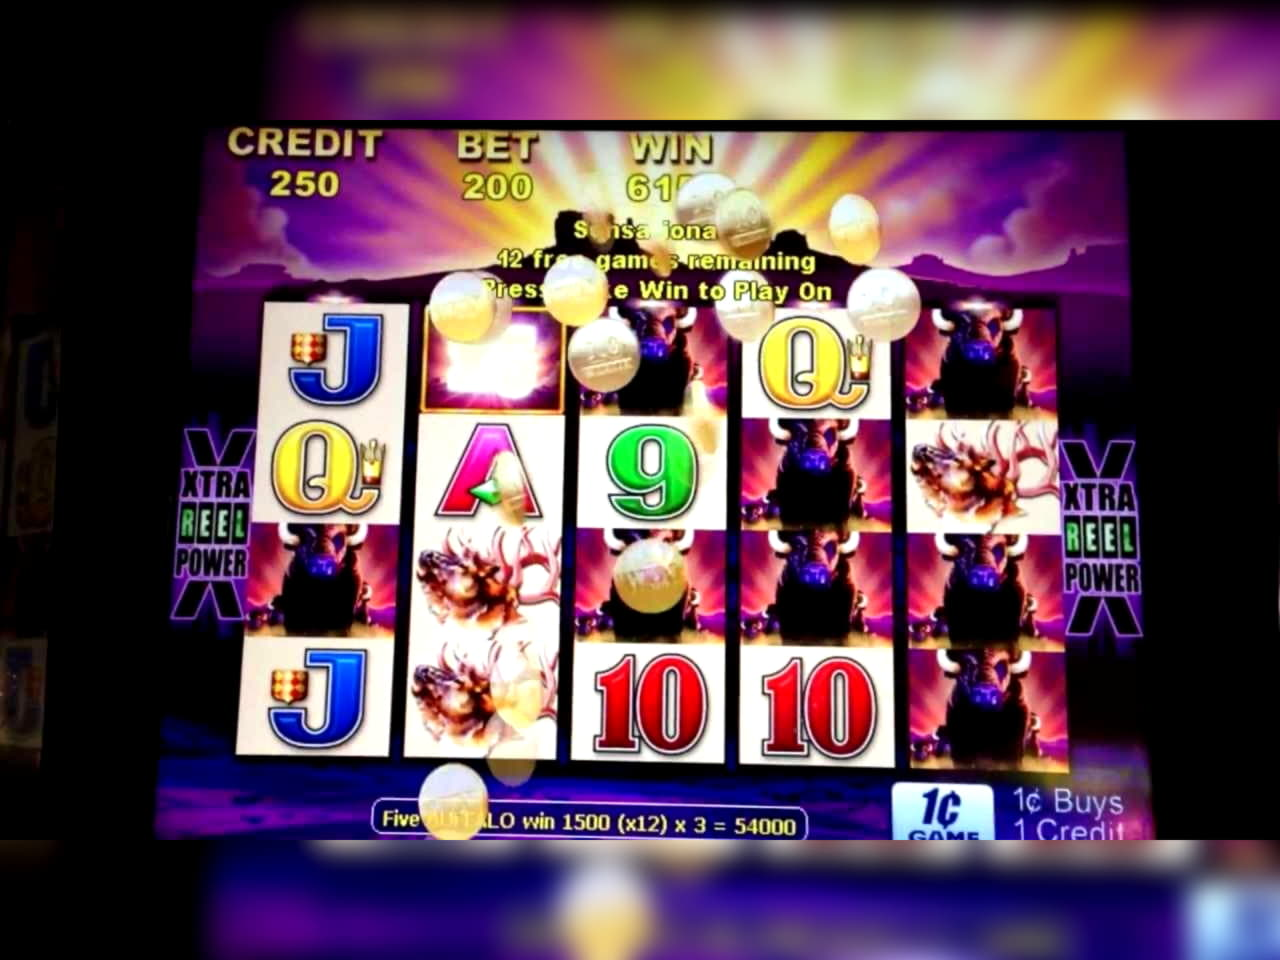 $666 Casino Chip at Casino com